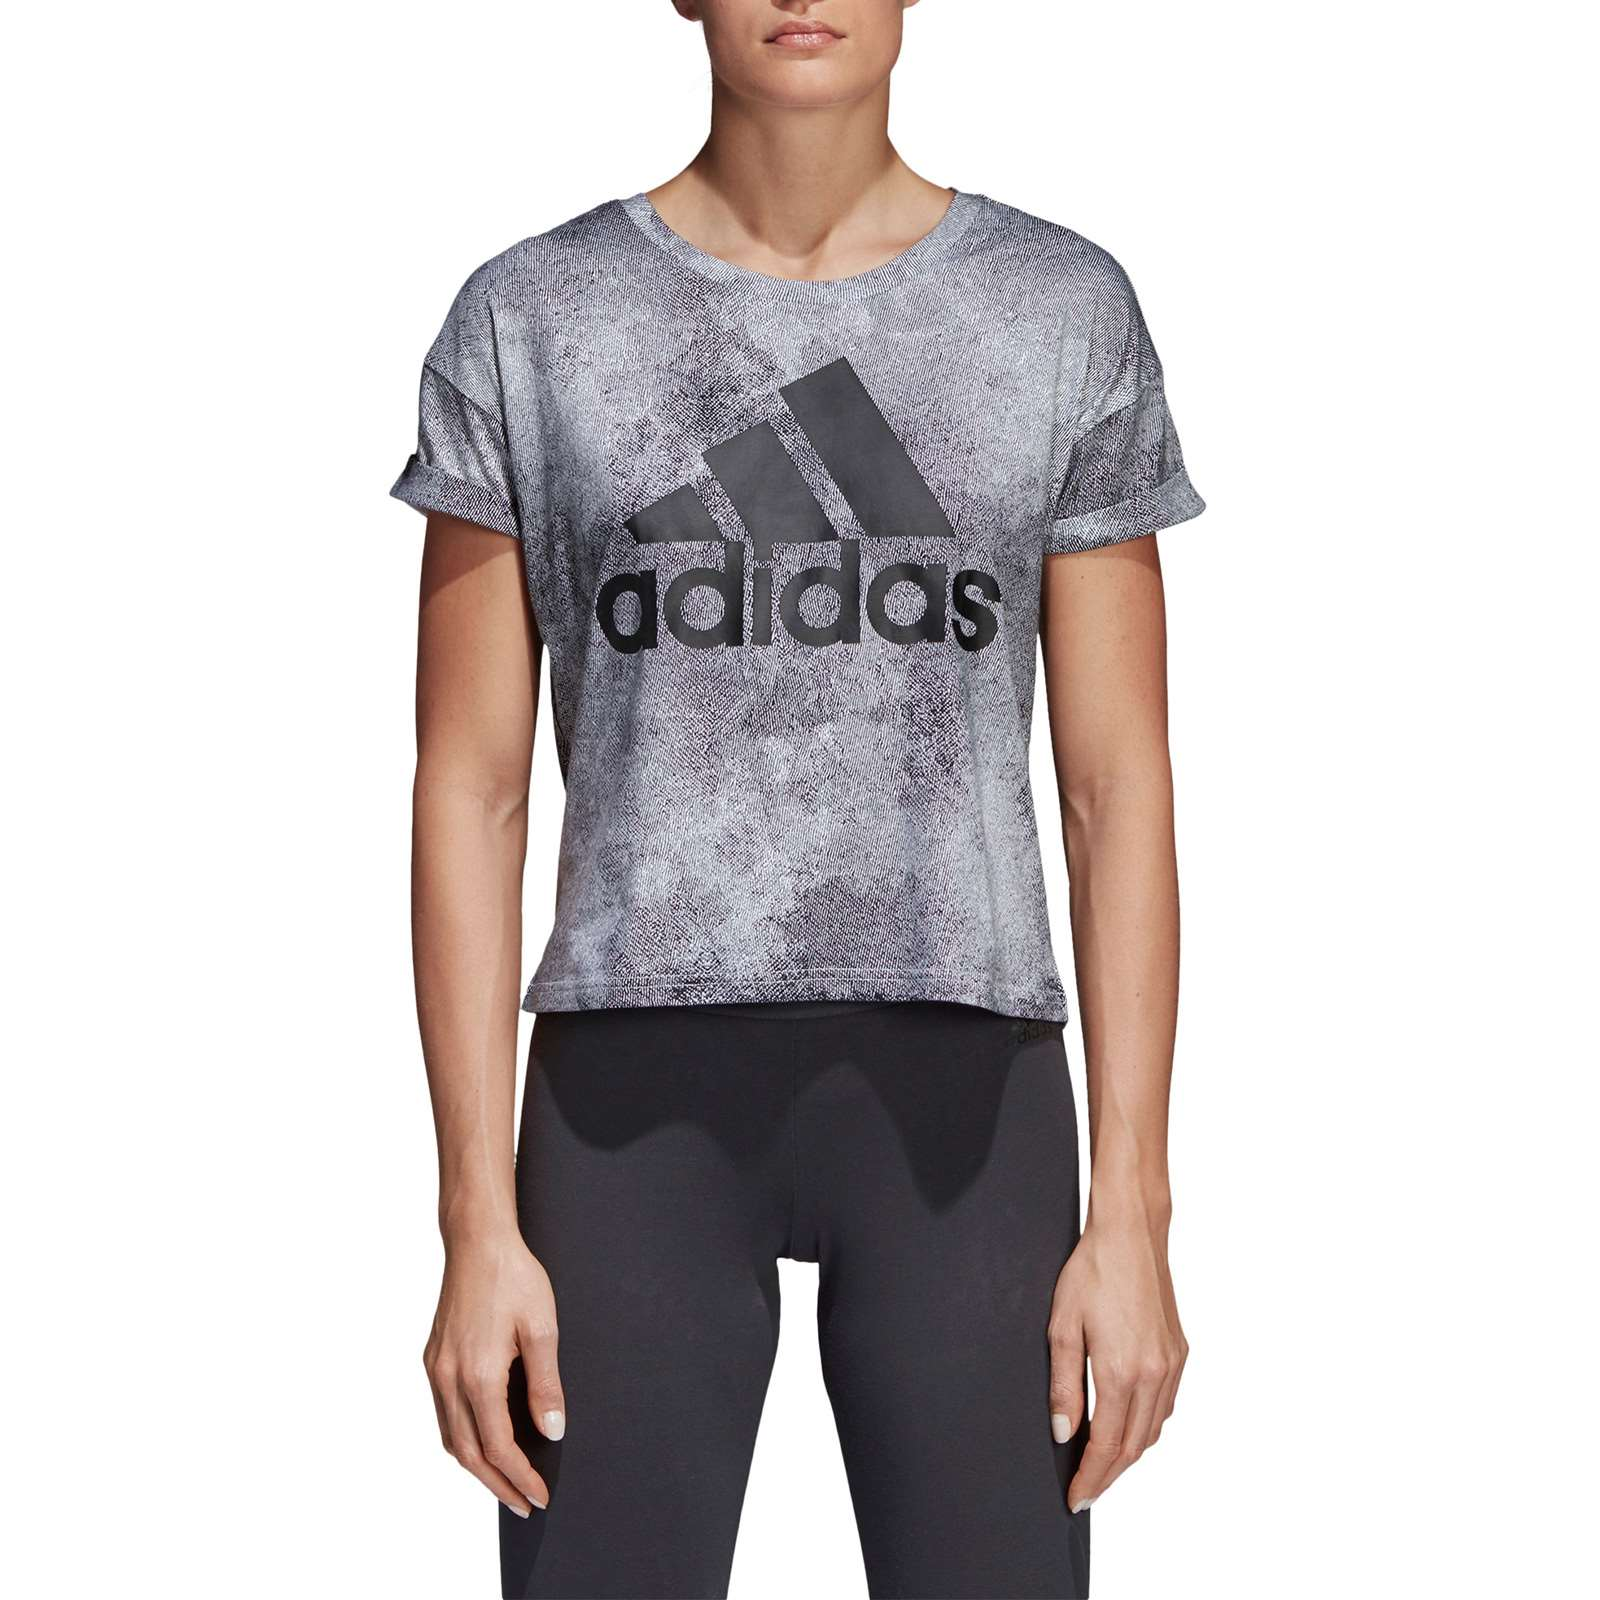 Adidas Performance T-shirt manches courtes - denim noir